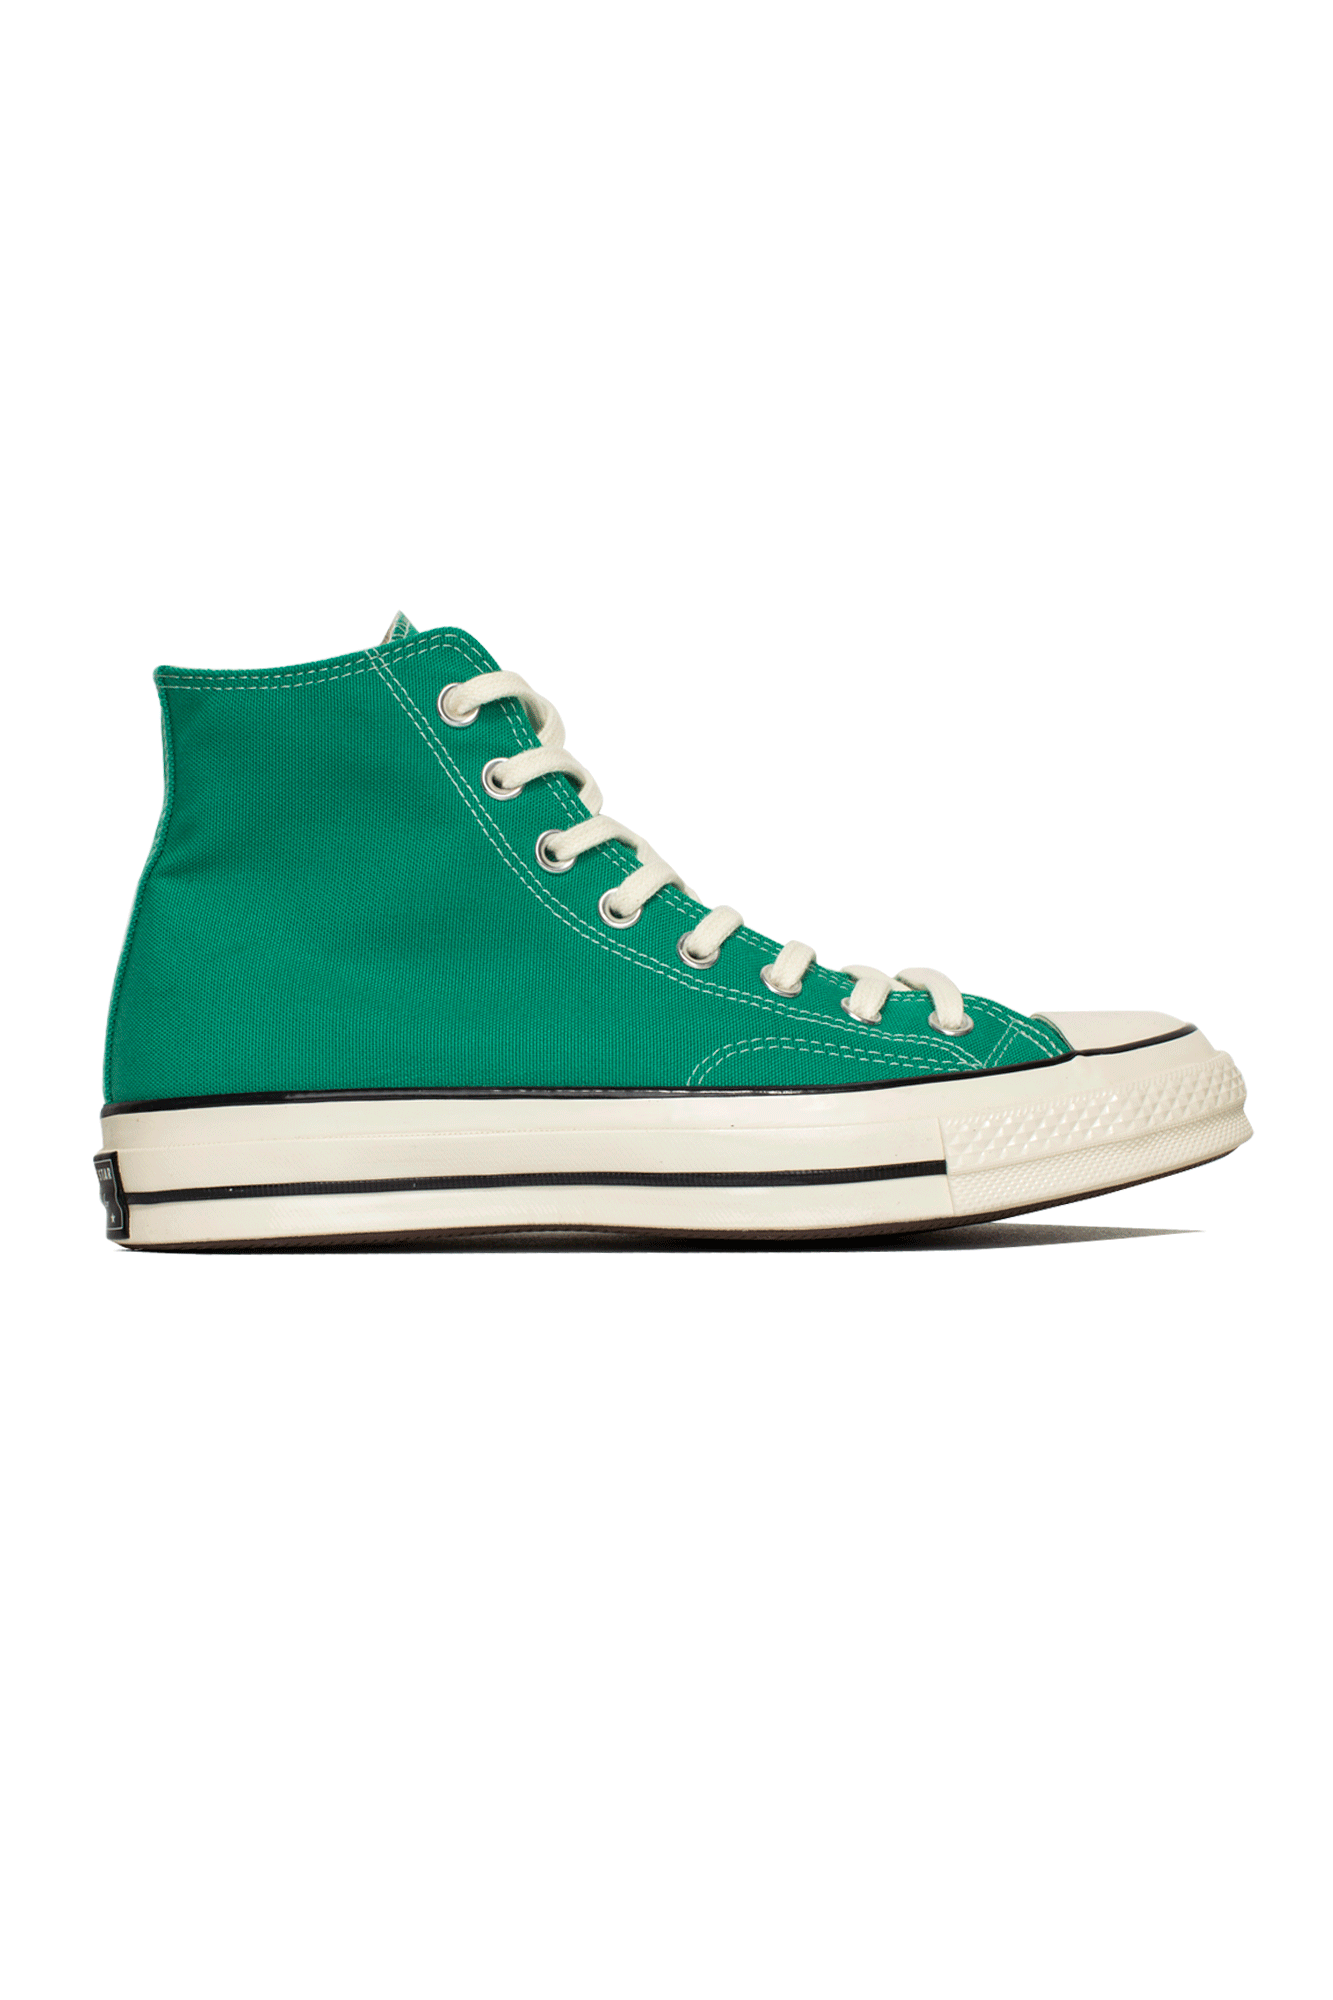 Chuck 70 Recycled Canvas Green